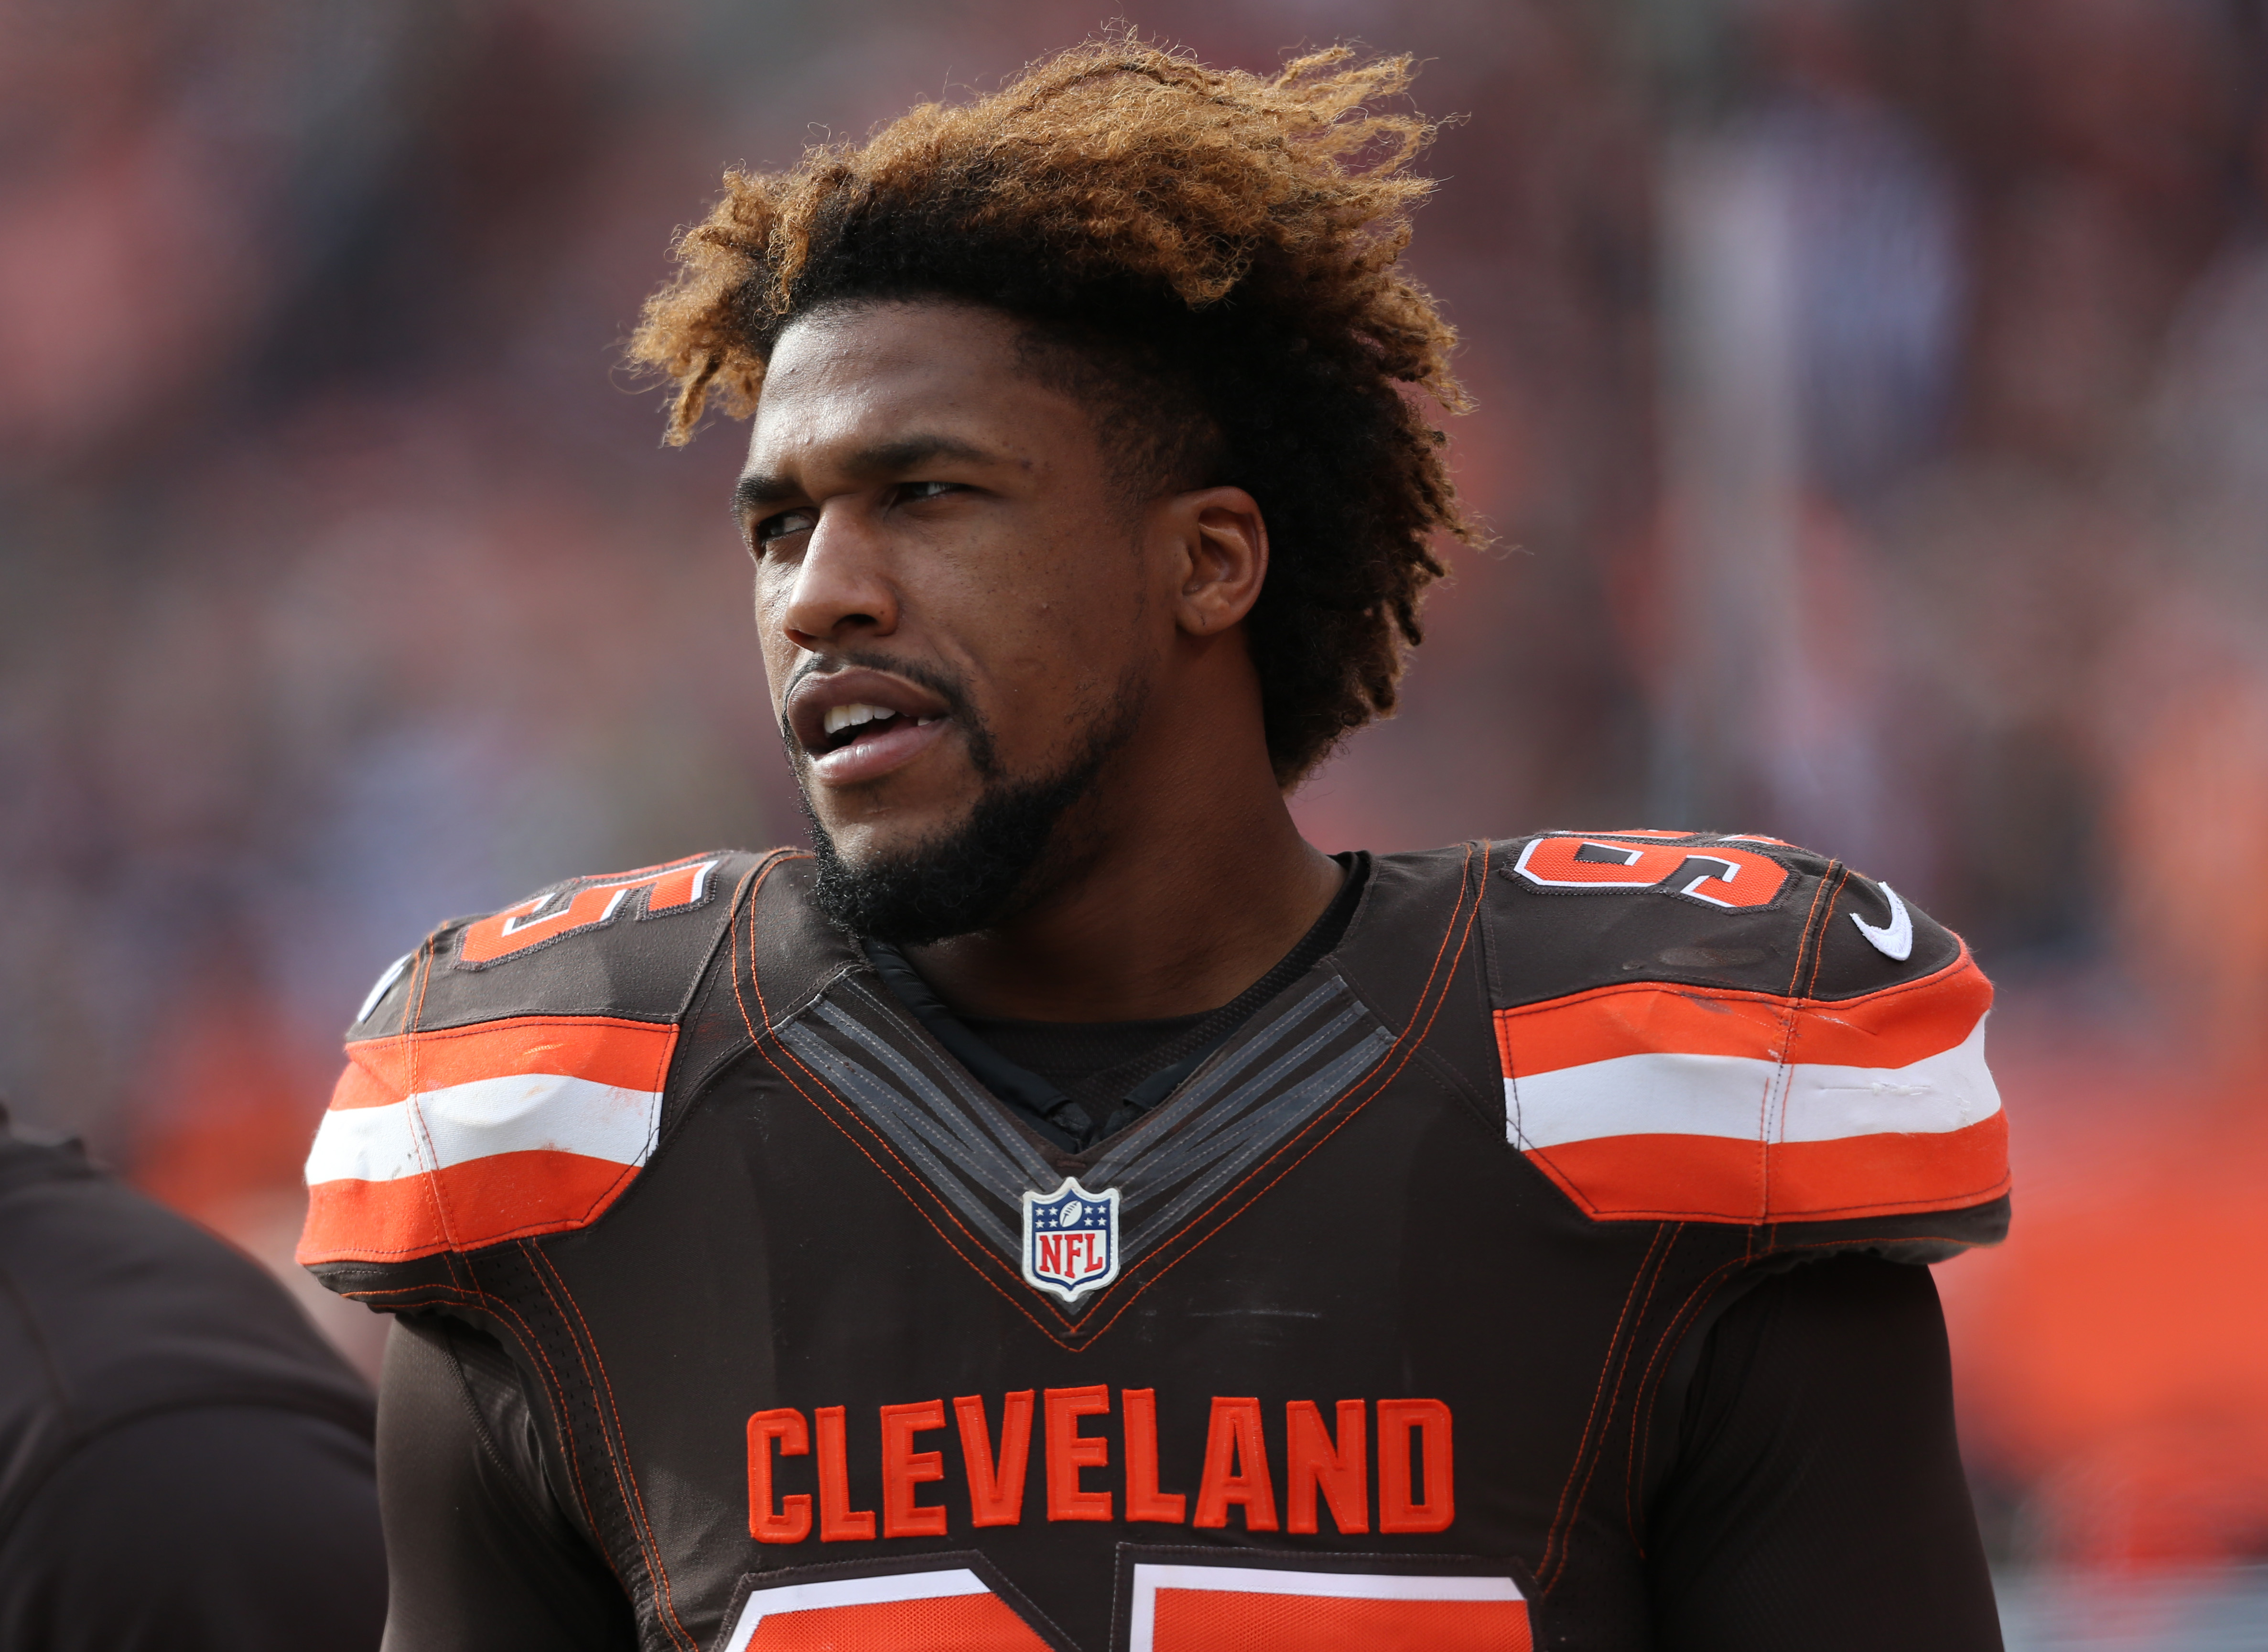 FILE - In this Dec. 6, 2015, file photo, Cleveland Browns' Armonty Bryant (95) watches during the first half of an NFL football game against the Cincinnati Bengals in Cleveland. Bryant has been indicted on two felony drug charges. Bryant and former teamma